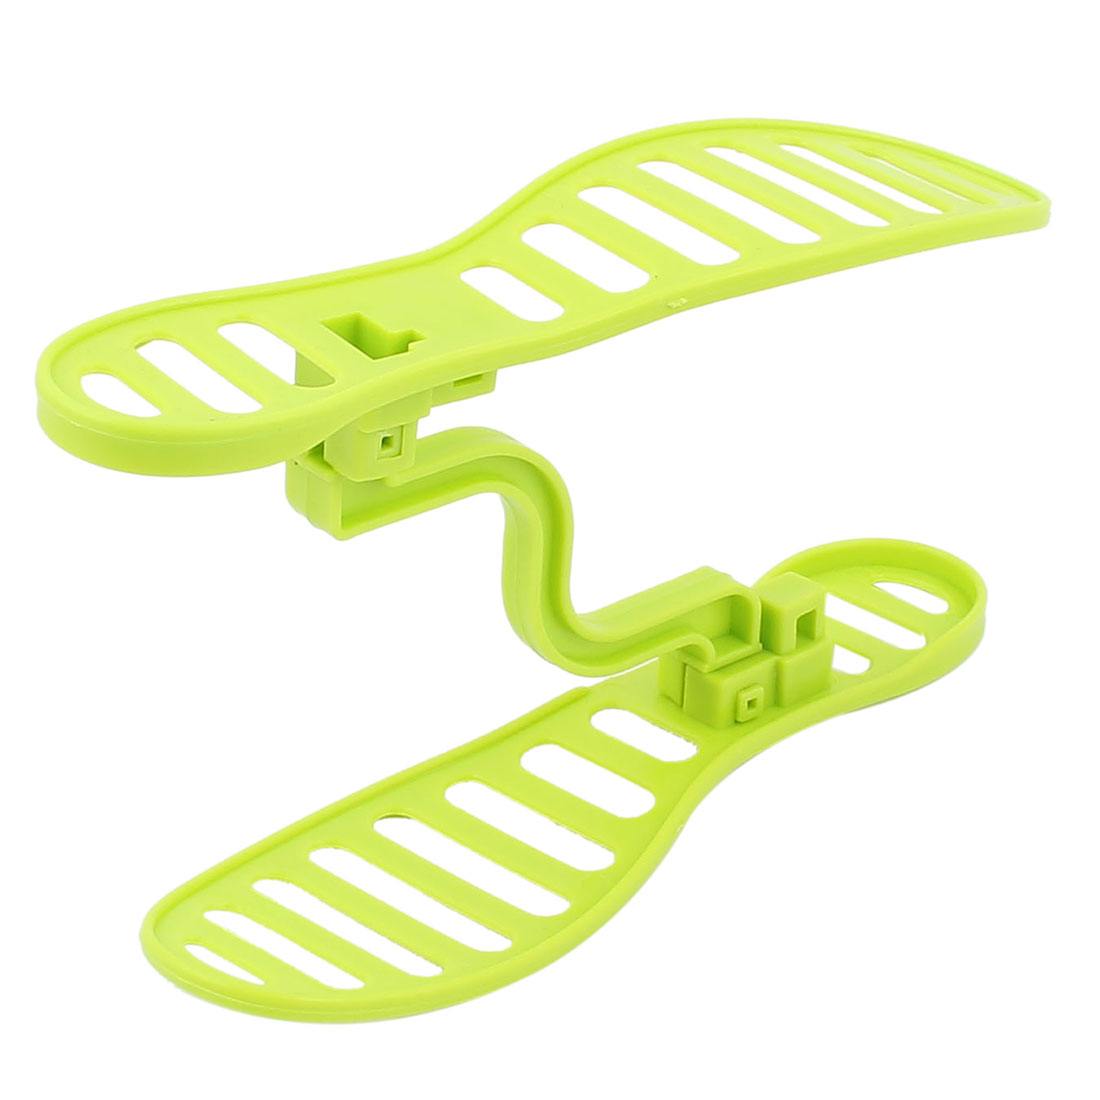 Home Family Feet Design Adjustable Shoes Double Dimensional Stand Rack Shelf Holder Stacking Organizer Green